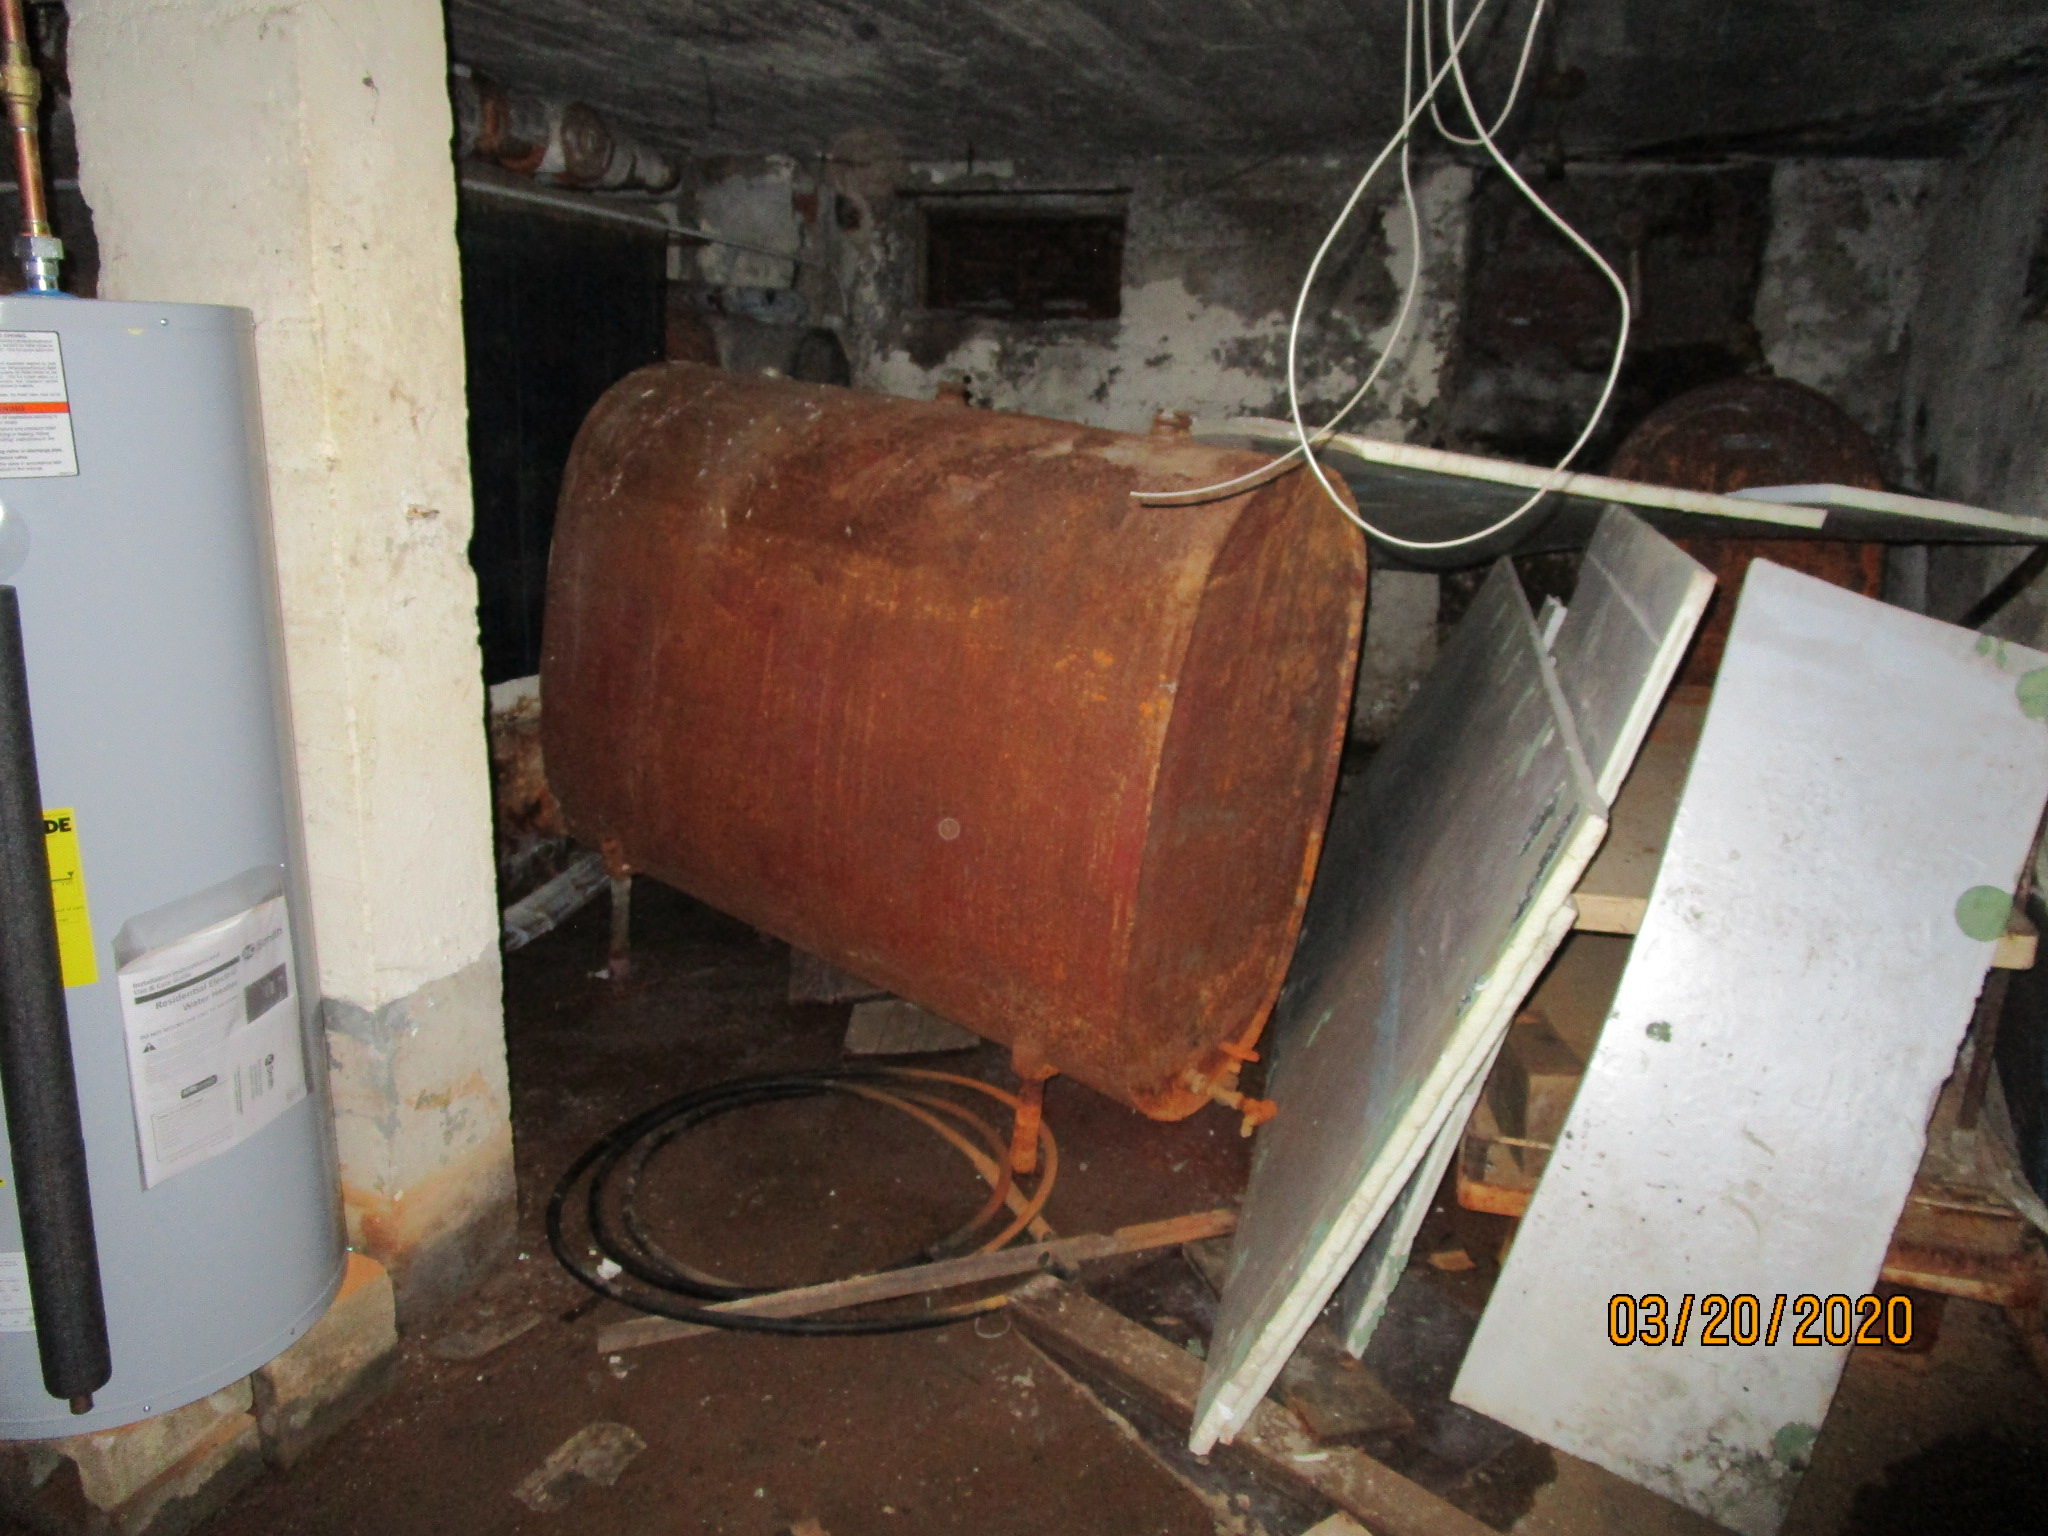 We specialize in cleaning and recylcing tanks